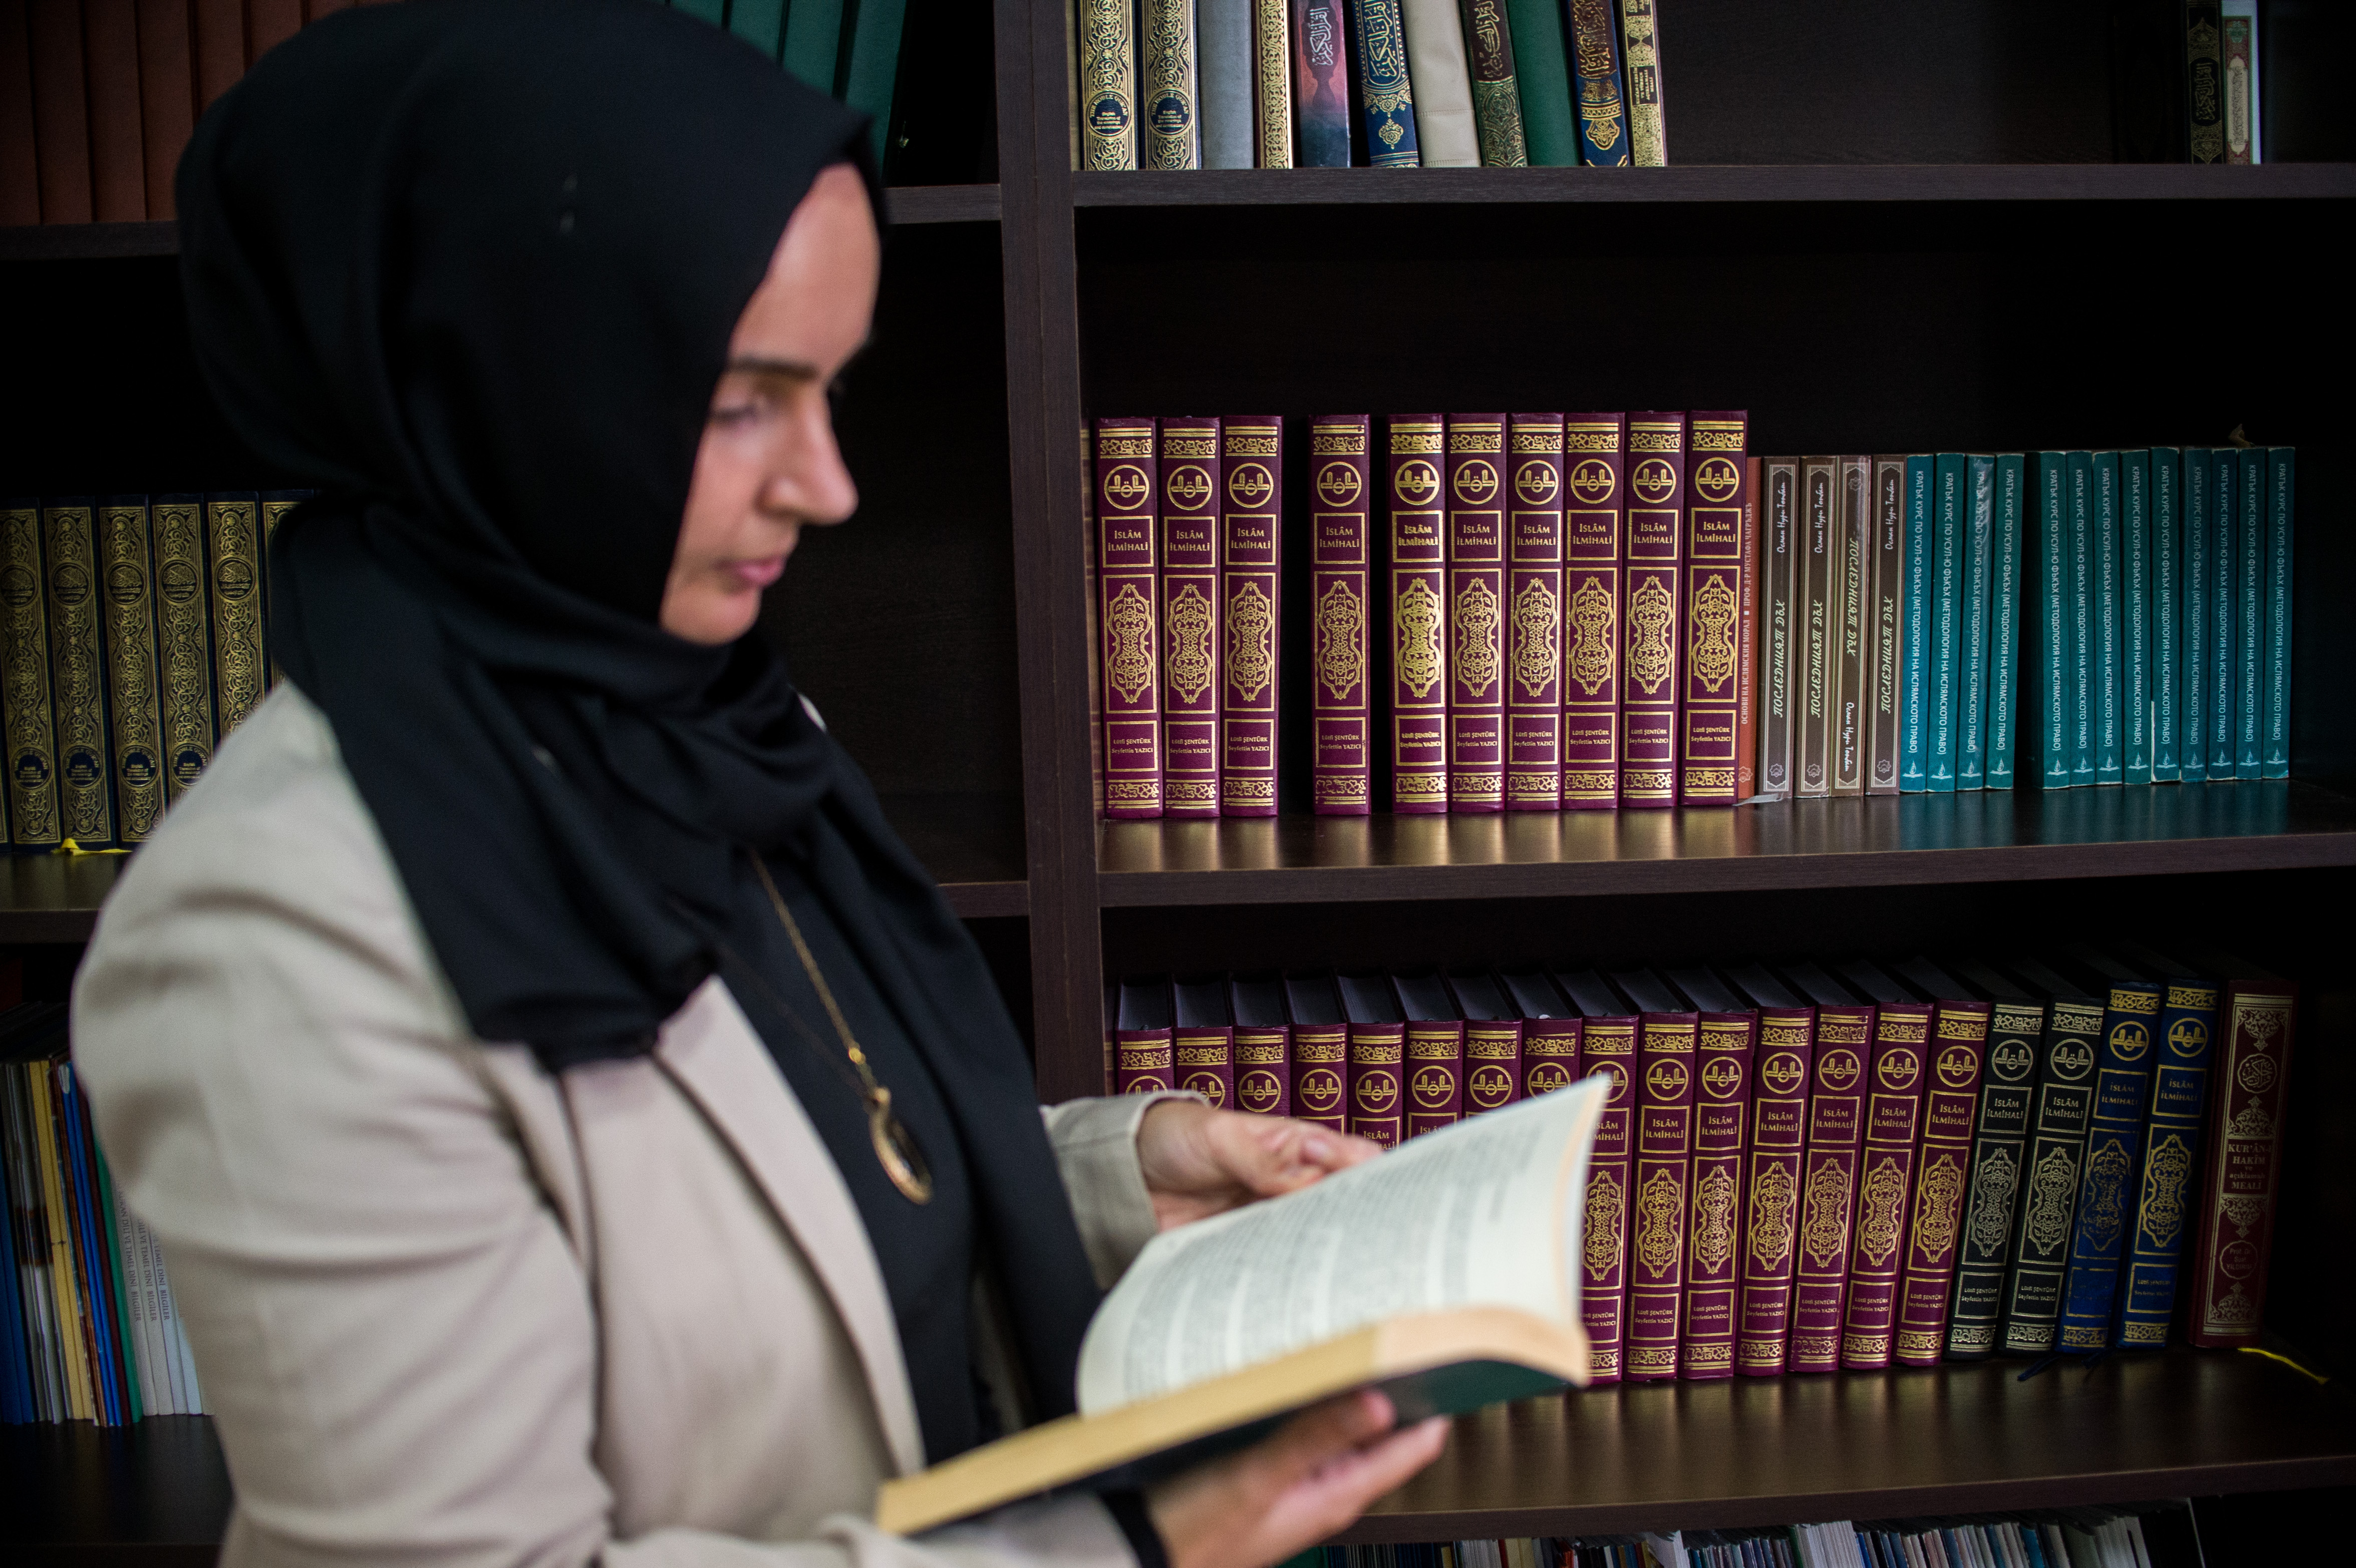 Fikrie Bozova, teacher, reads a book in the library of the Muslim Theological School in the town of Momchilgrad on December 6, 2020. NIKOLAY DOYCHINOV for AufRuhr